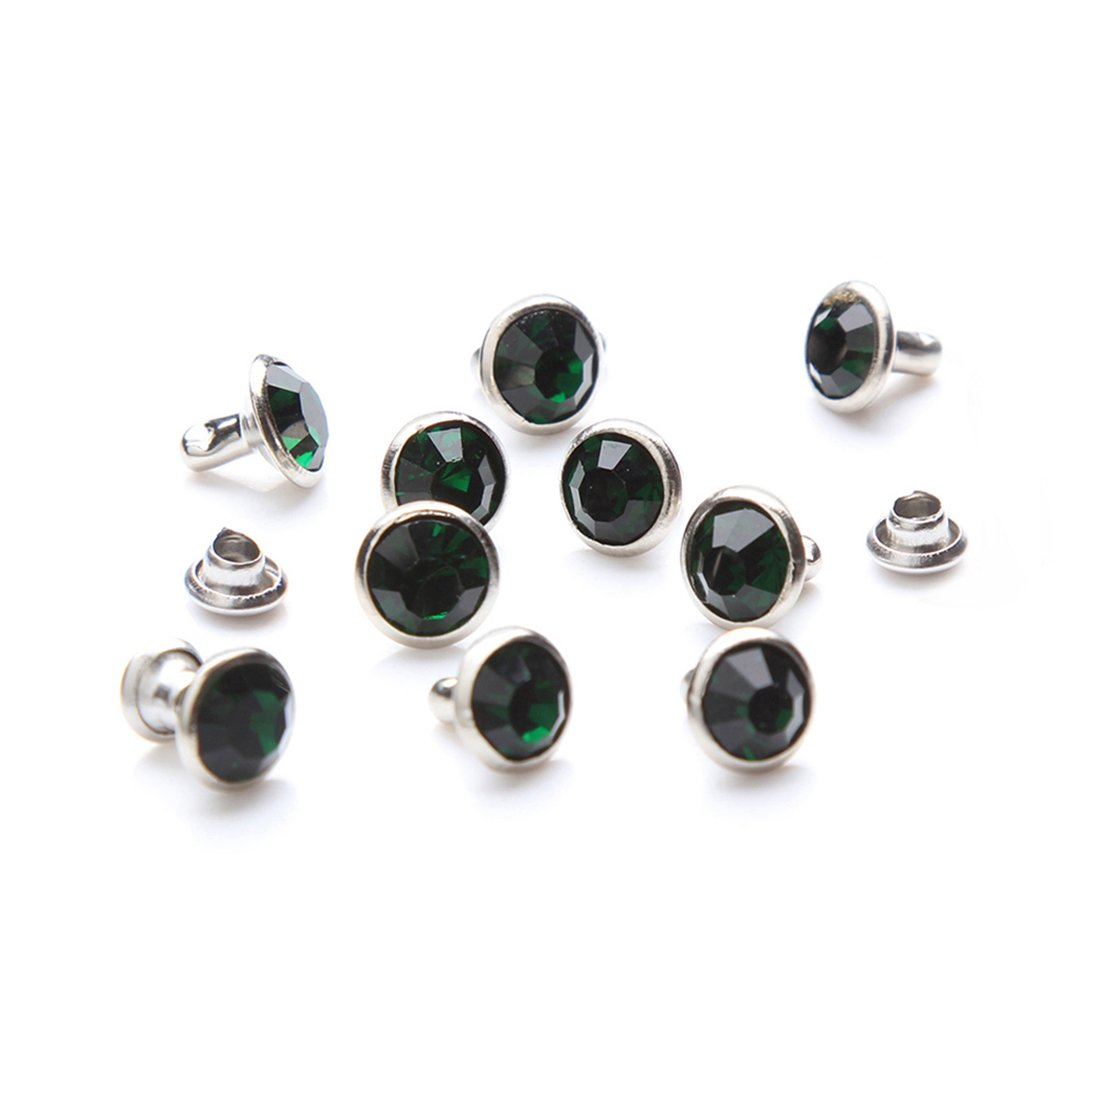 100 Sets Cz Crystal Rapid Rivets Silver Color Spots Studs Double Cap for DIY Leather-Craft 8mm, Emerald